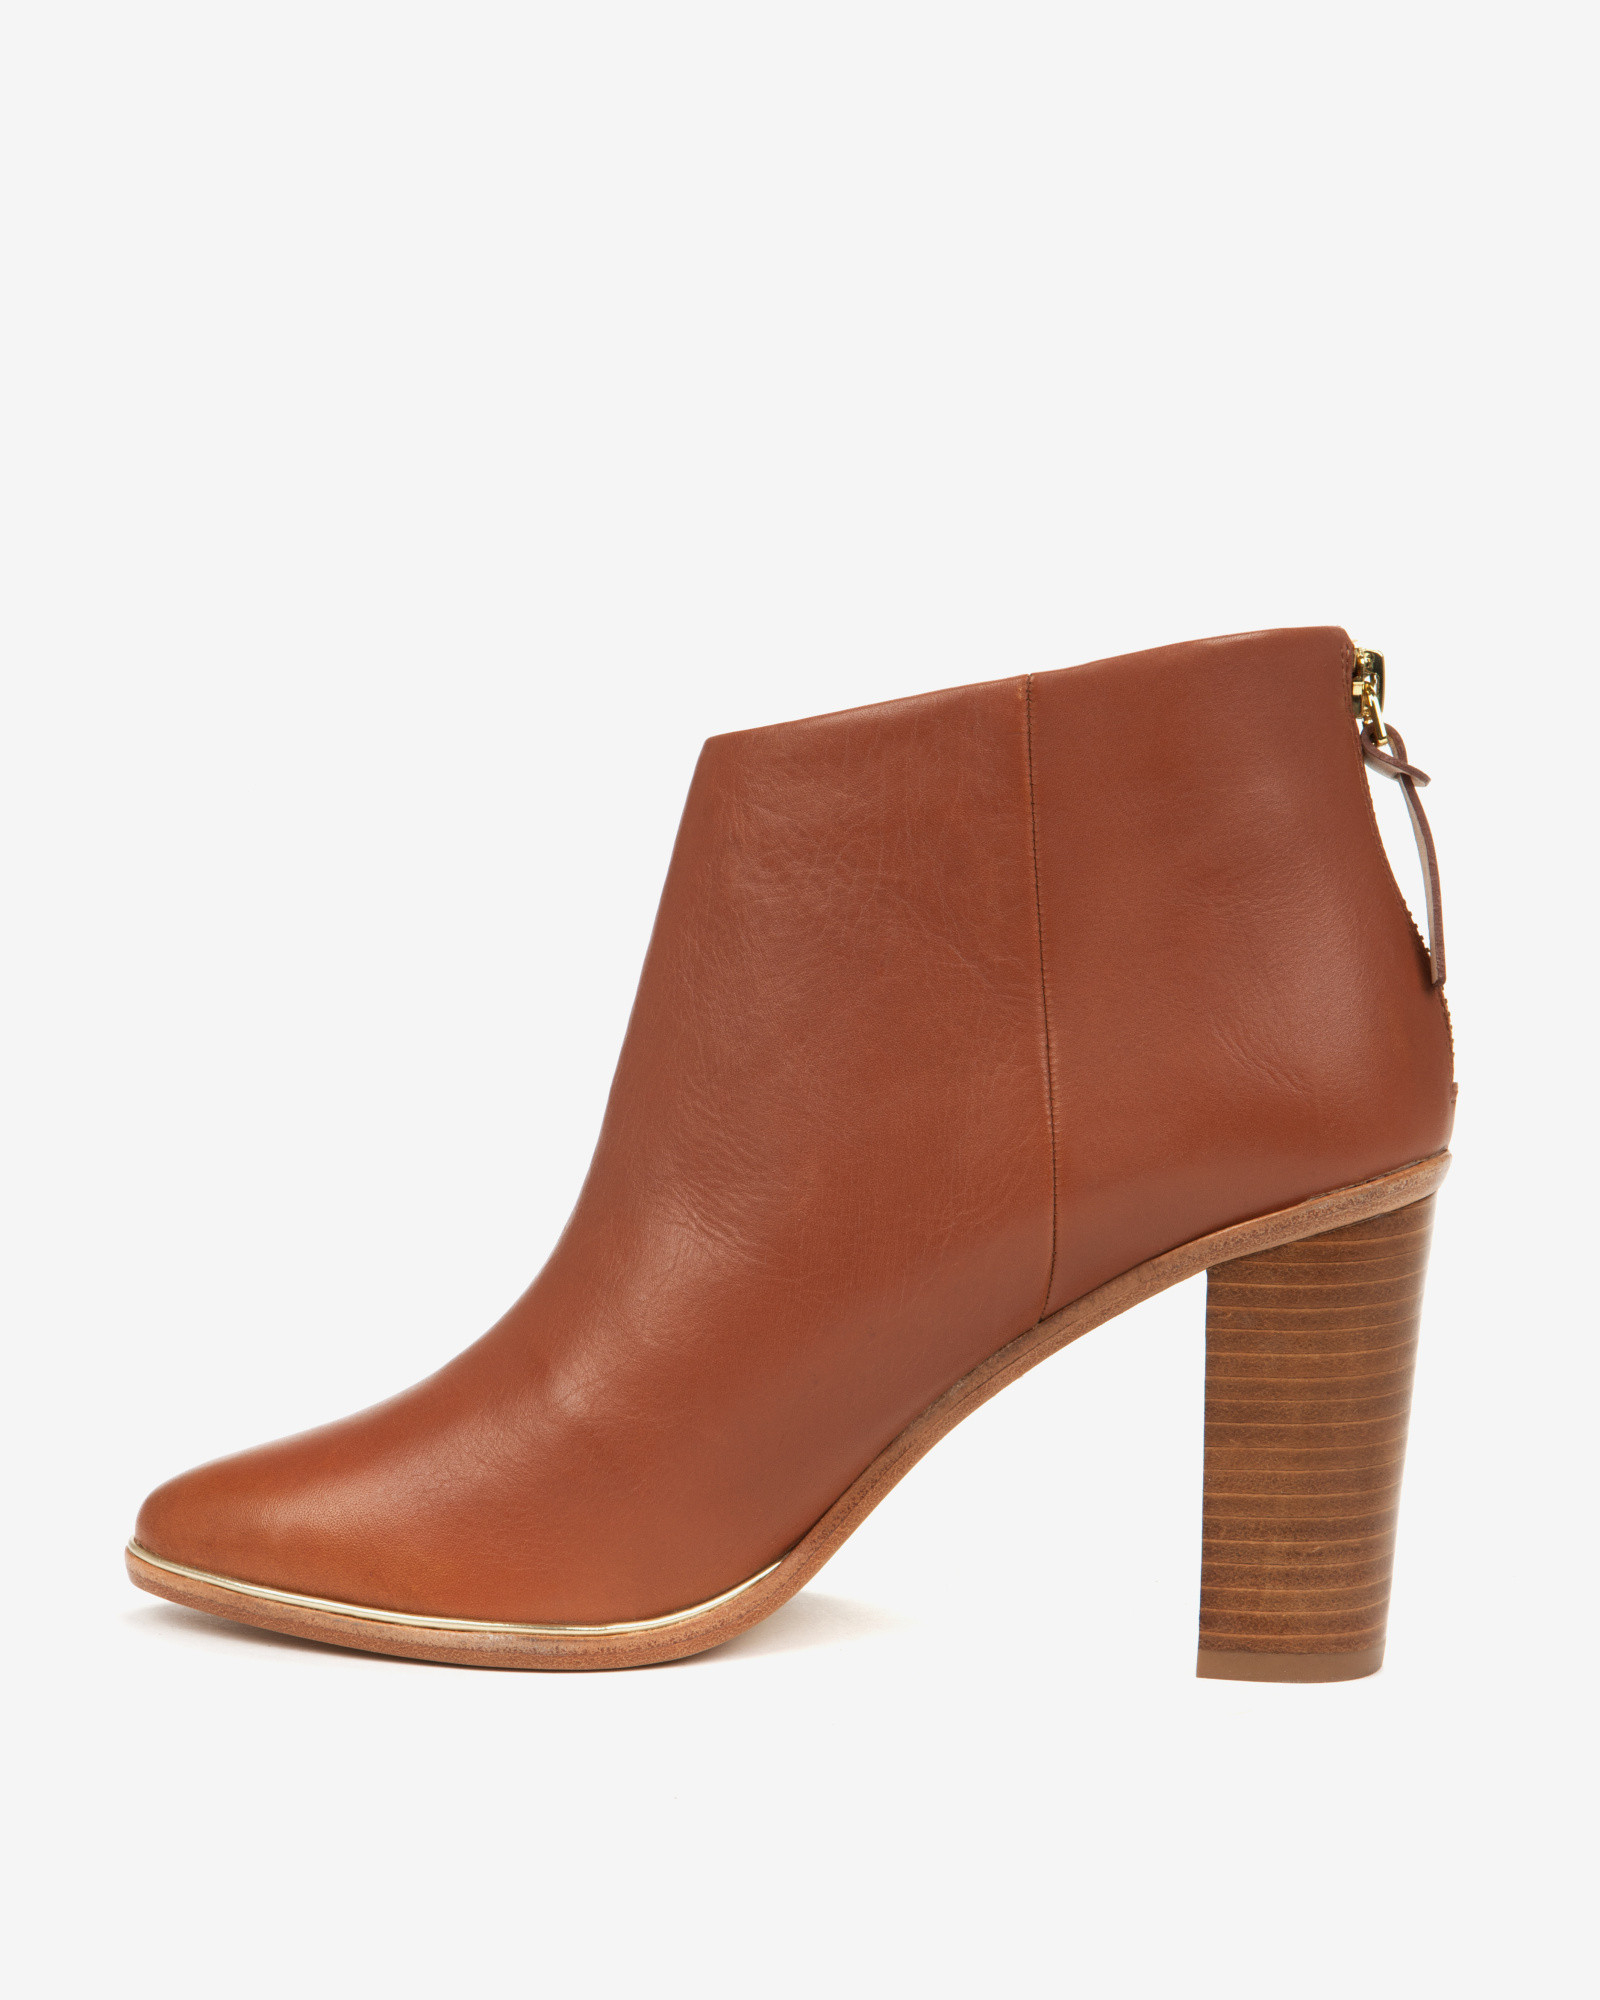 Ted Baker Leather Ankle Boots in Tan (Brown)